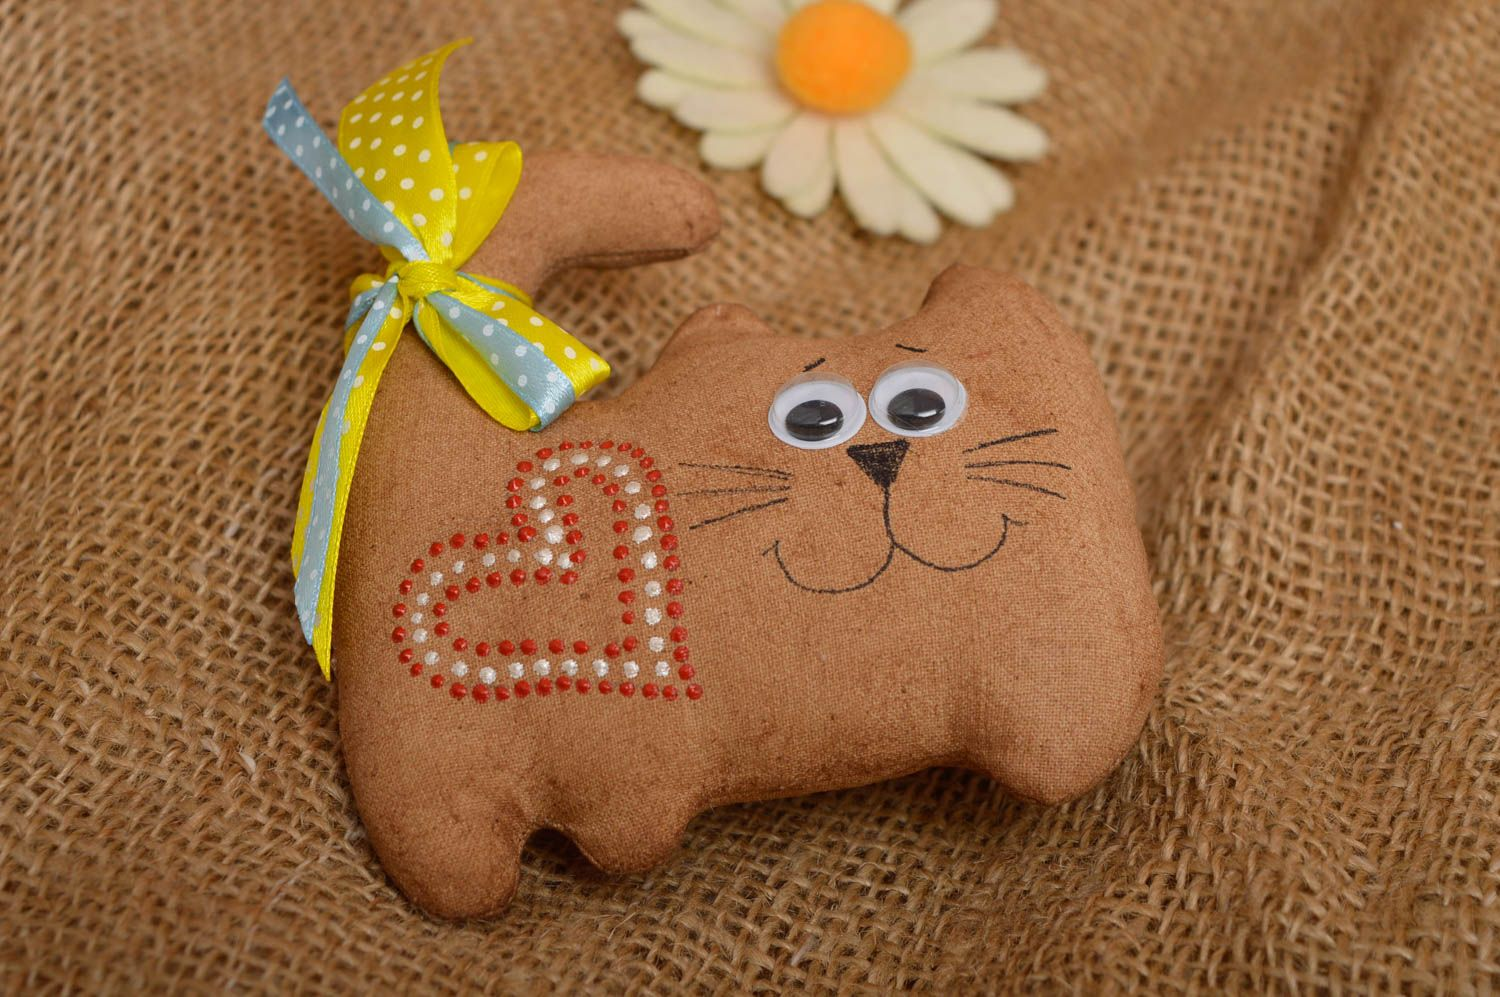 Homemade stuffed toy fridge magnet cool magnets for decorative use only photo 1